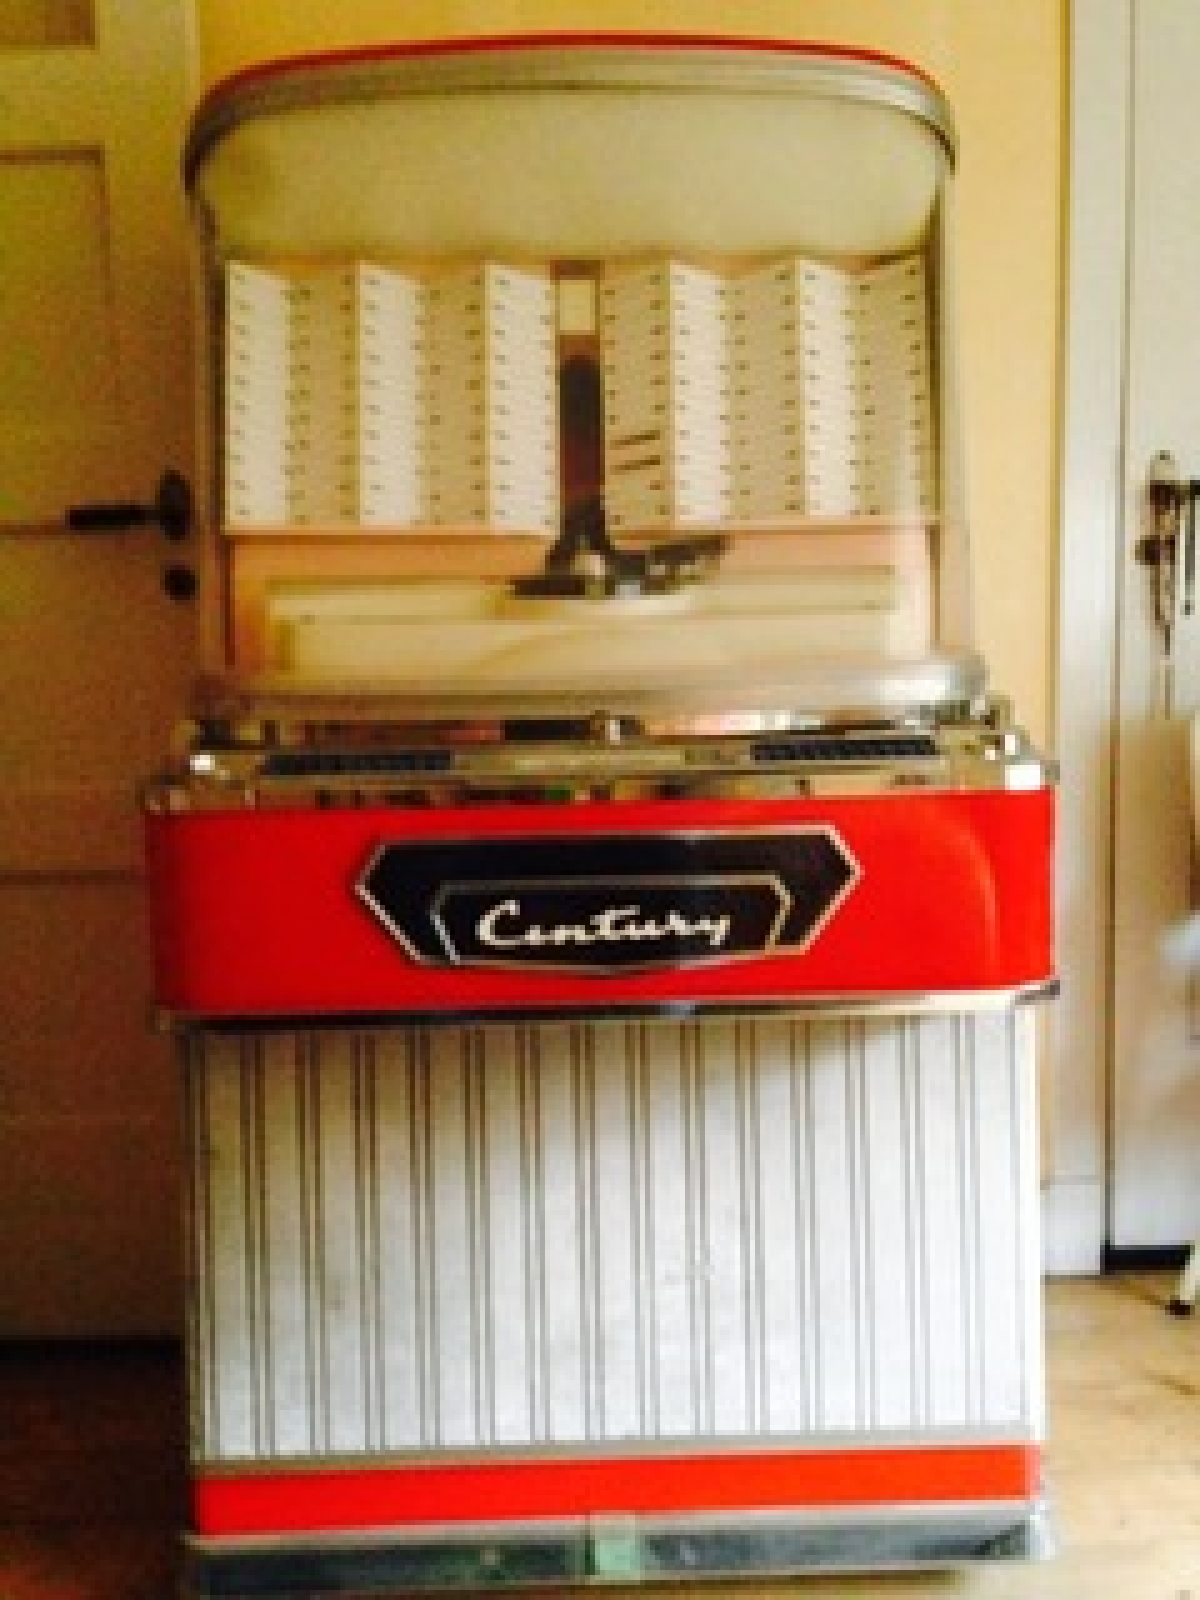 Century 1155 Netherlands Now In Terra Technica Jukebox Museum In The Czech Republic